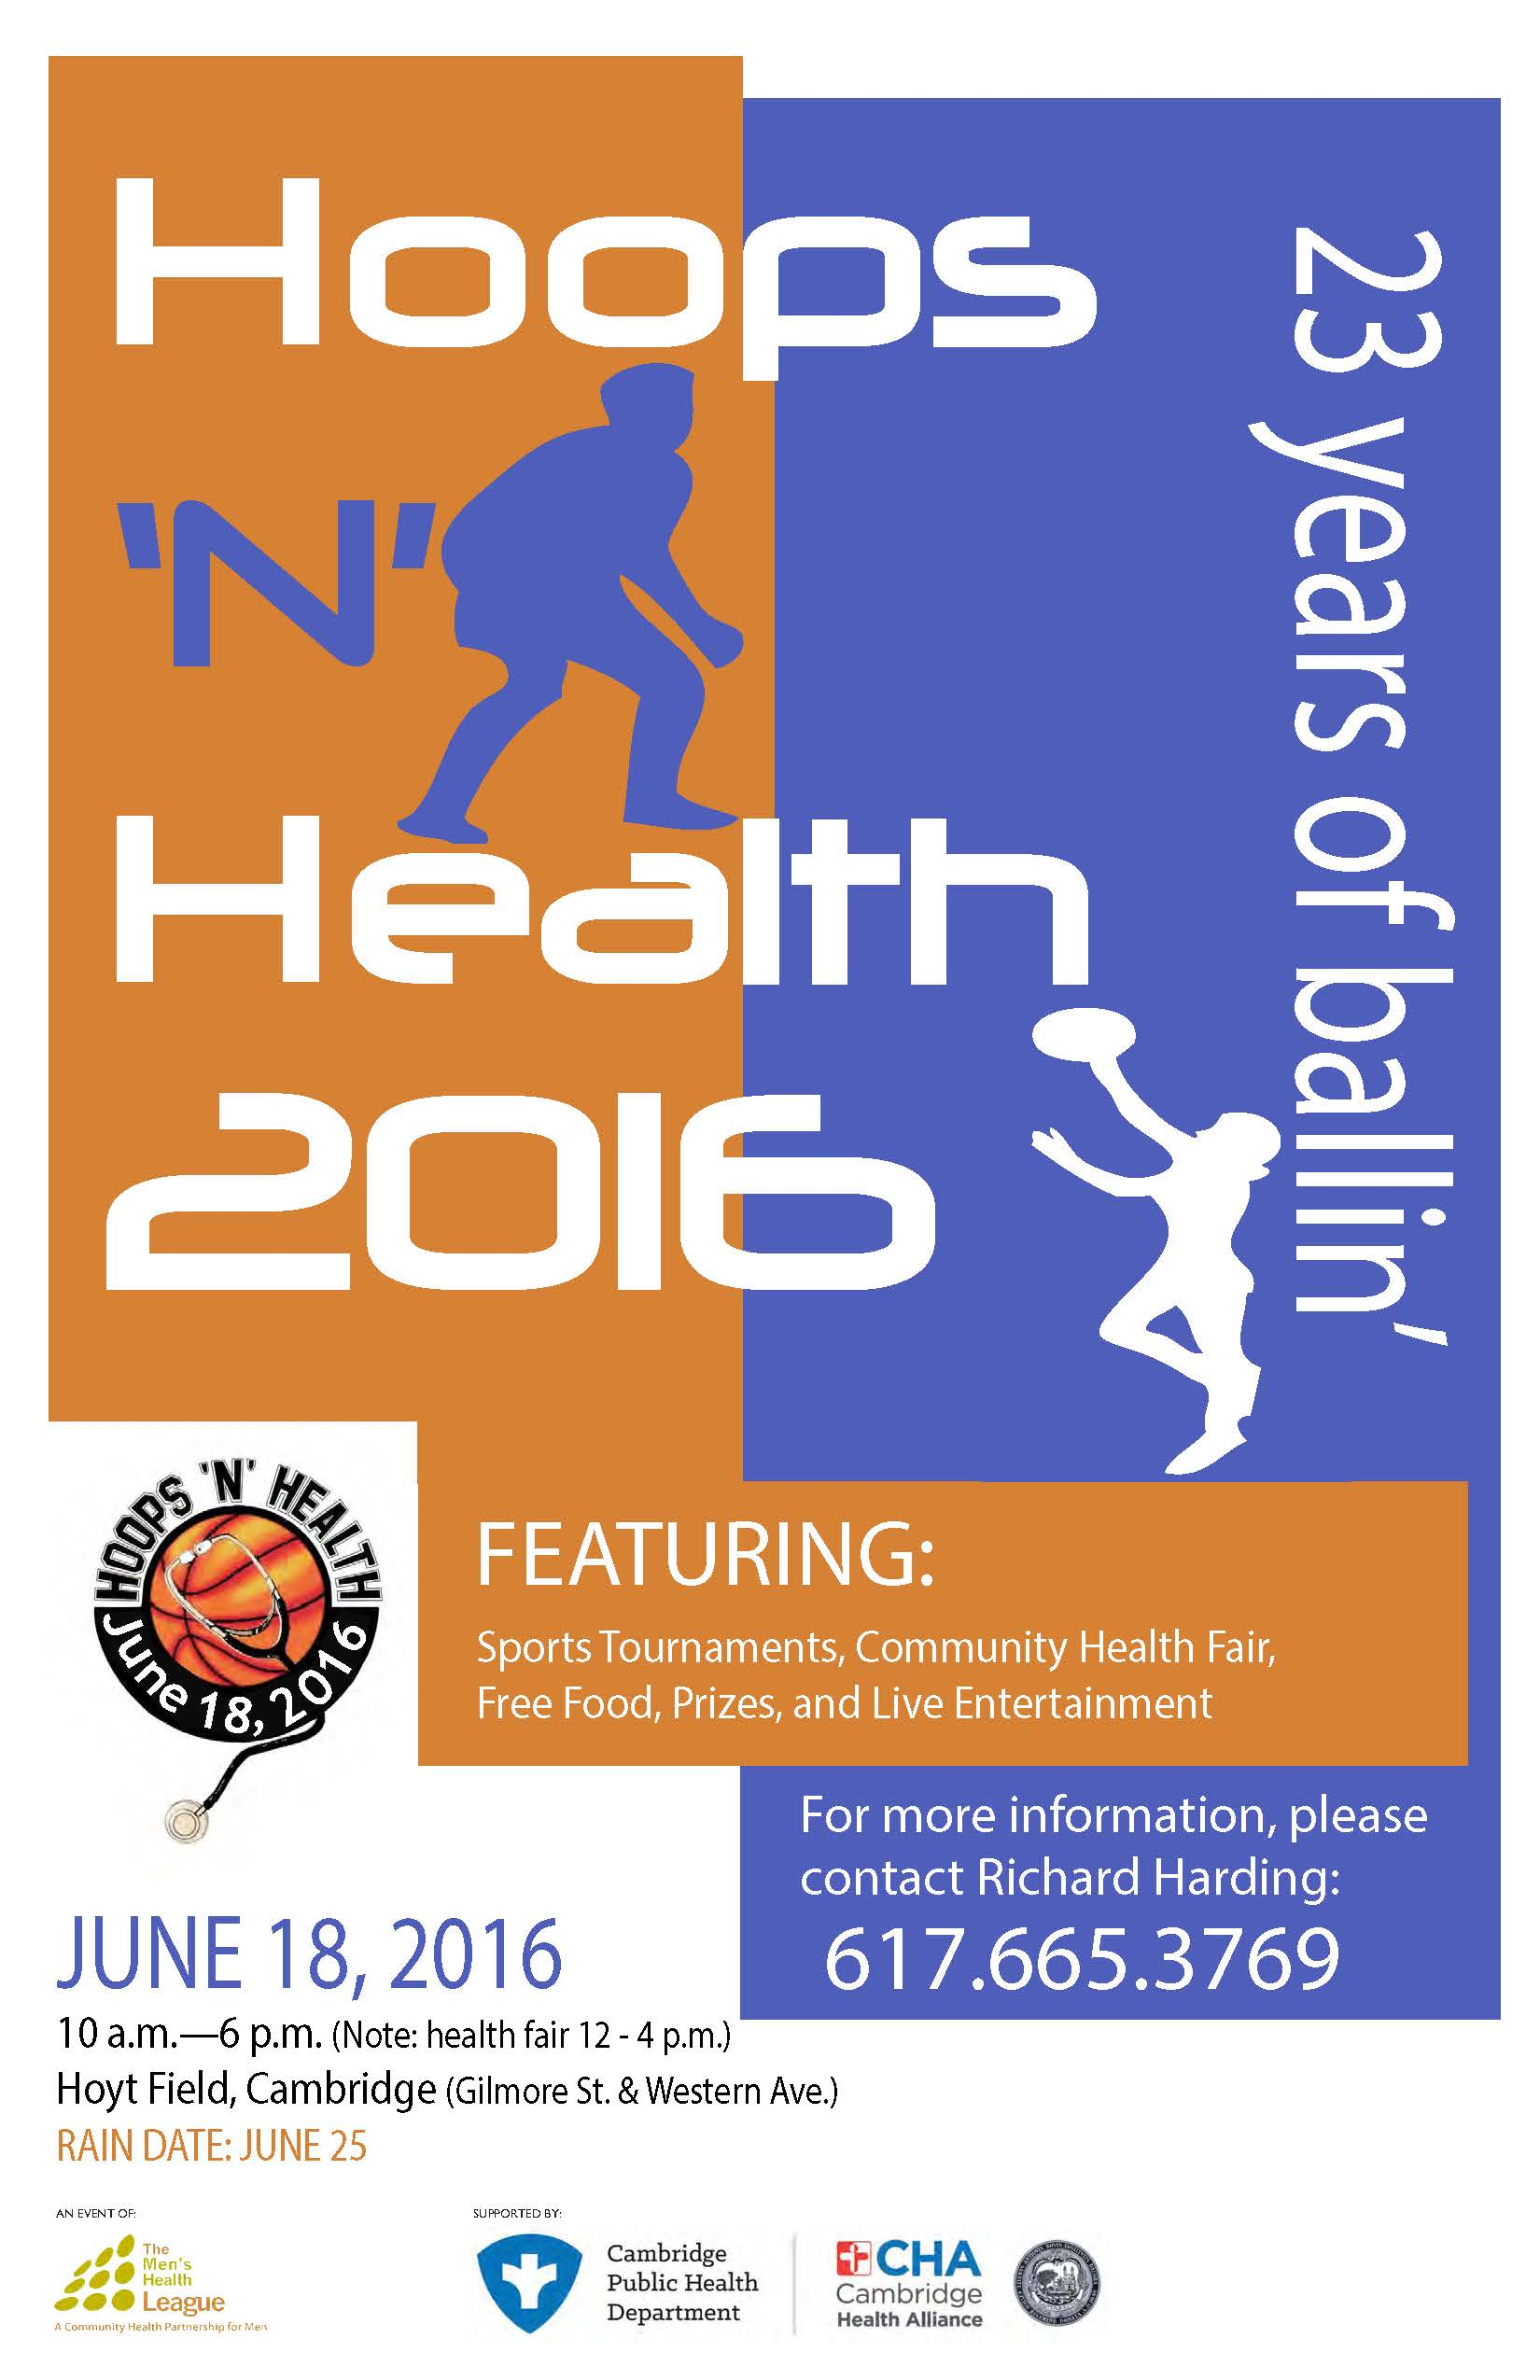 hoops_n_health_flyer_for_event_calendar.jpg